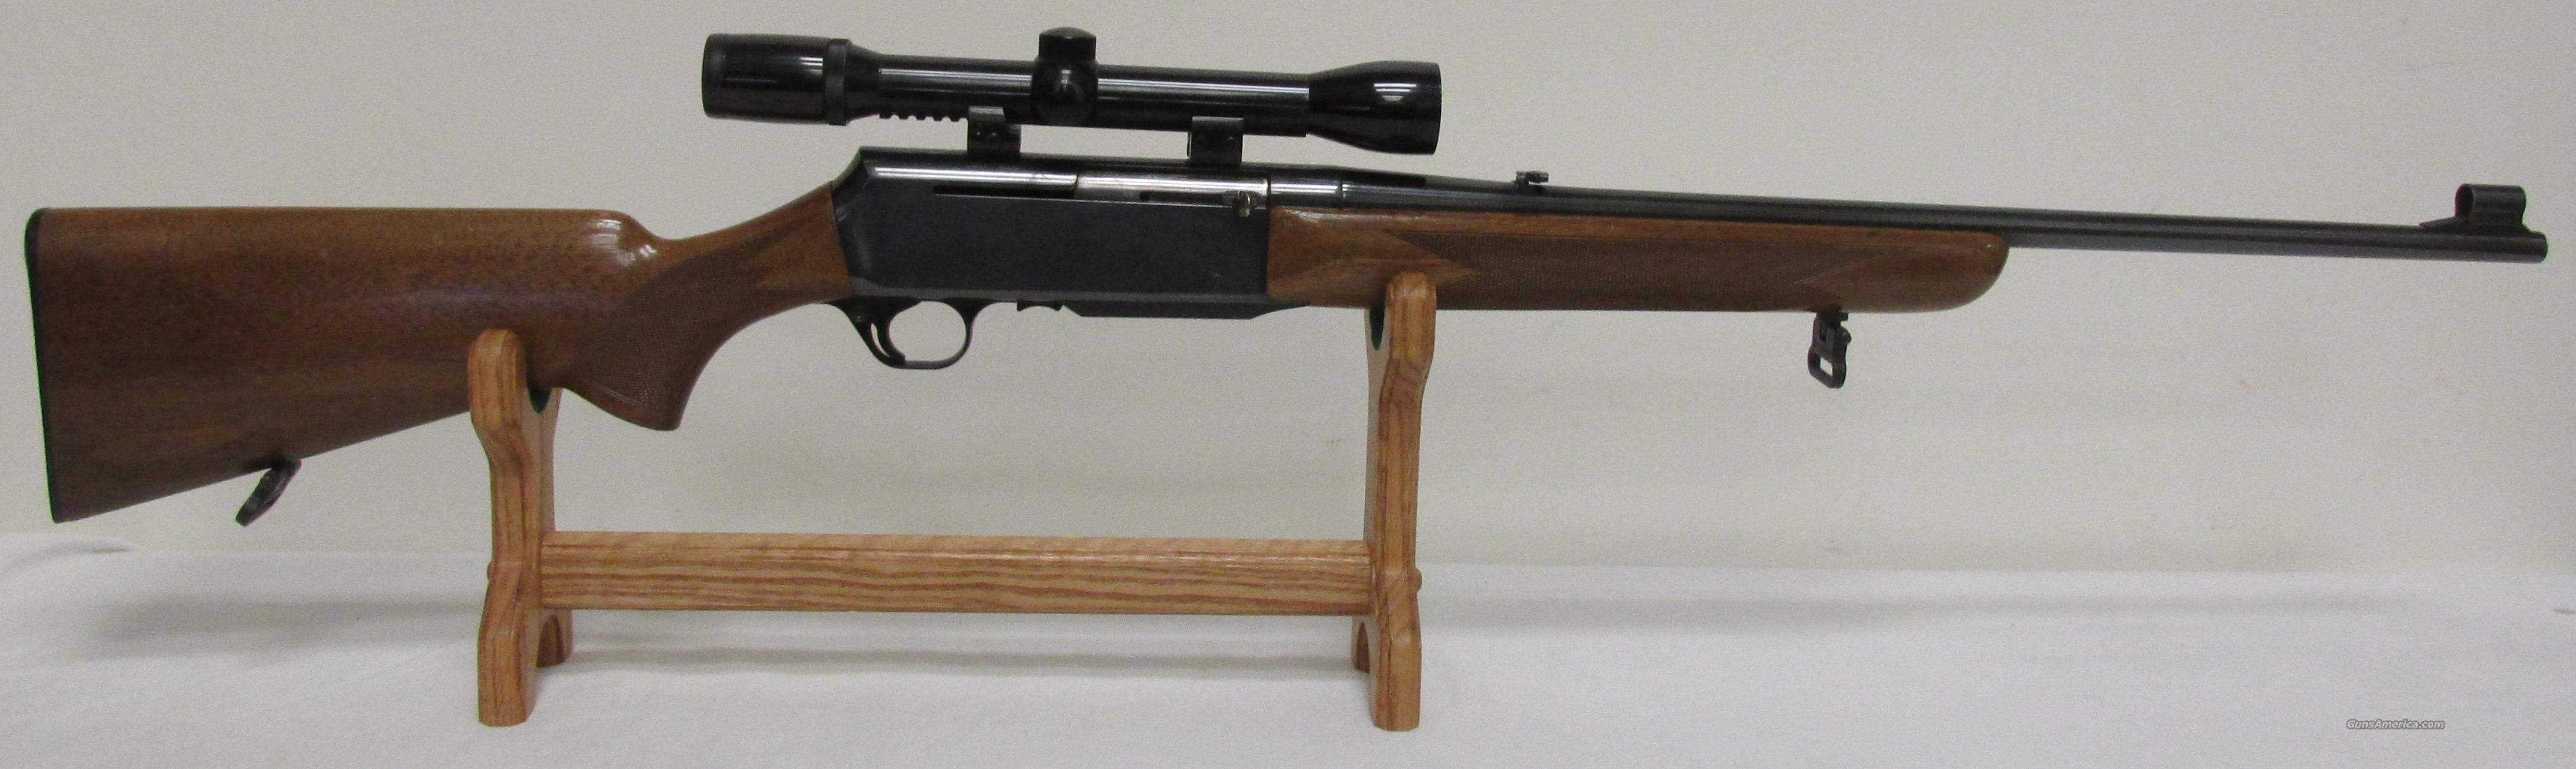 Browning Belgium Rifle W/Scope .270 Win Patent Pending  Guns > Rifles > Browning Rifles > Semi Auto > Hunting